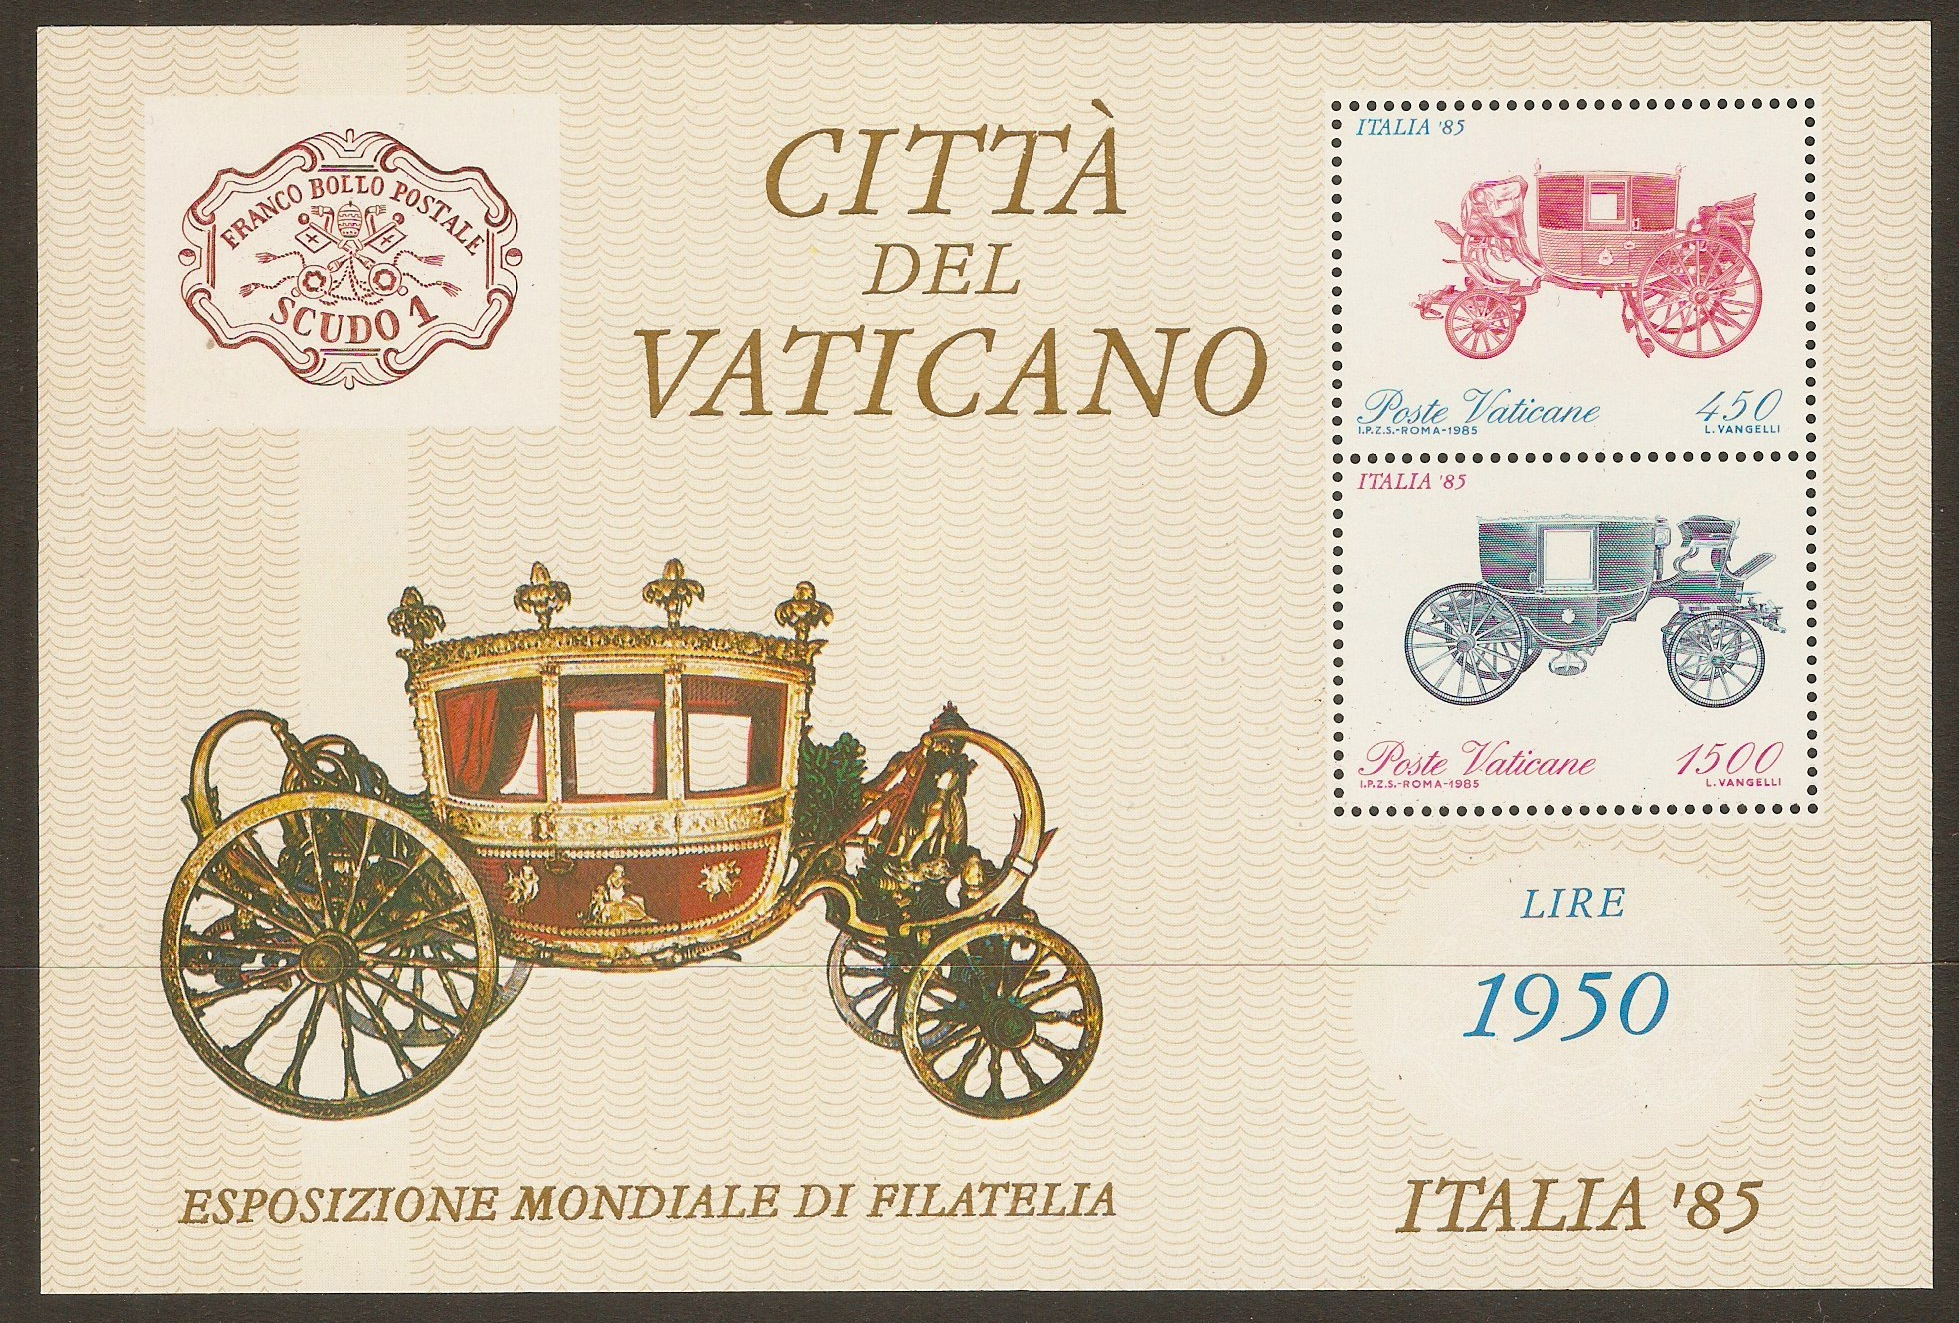 Vatican City 1985 Italia '85 sheet. SGMS845.